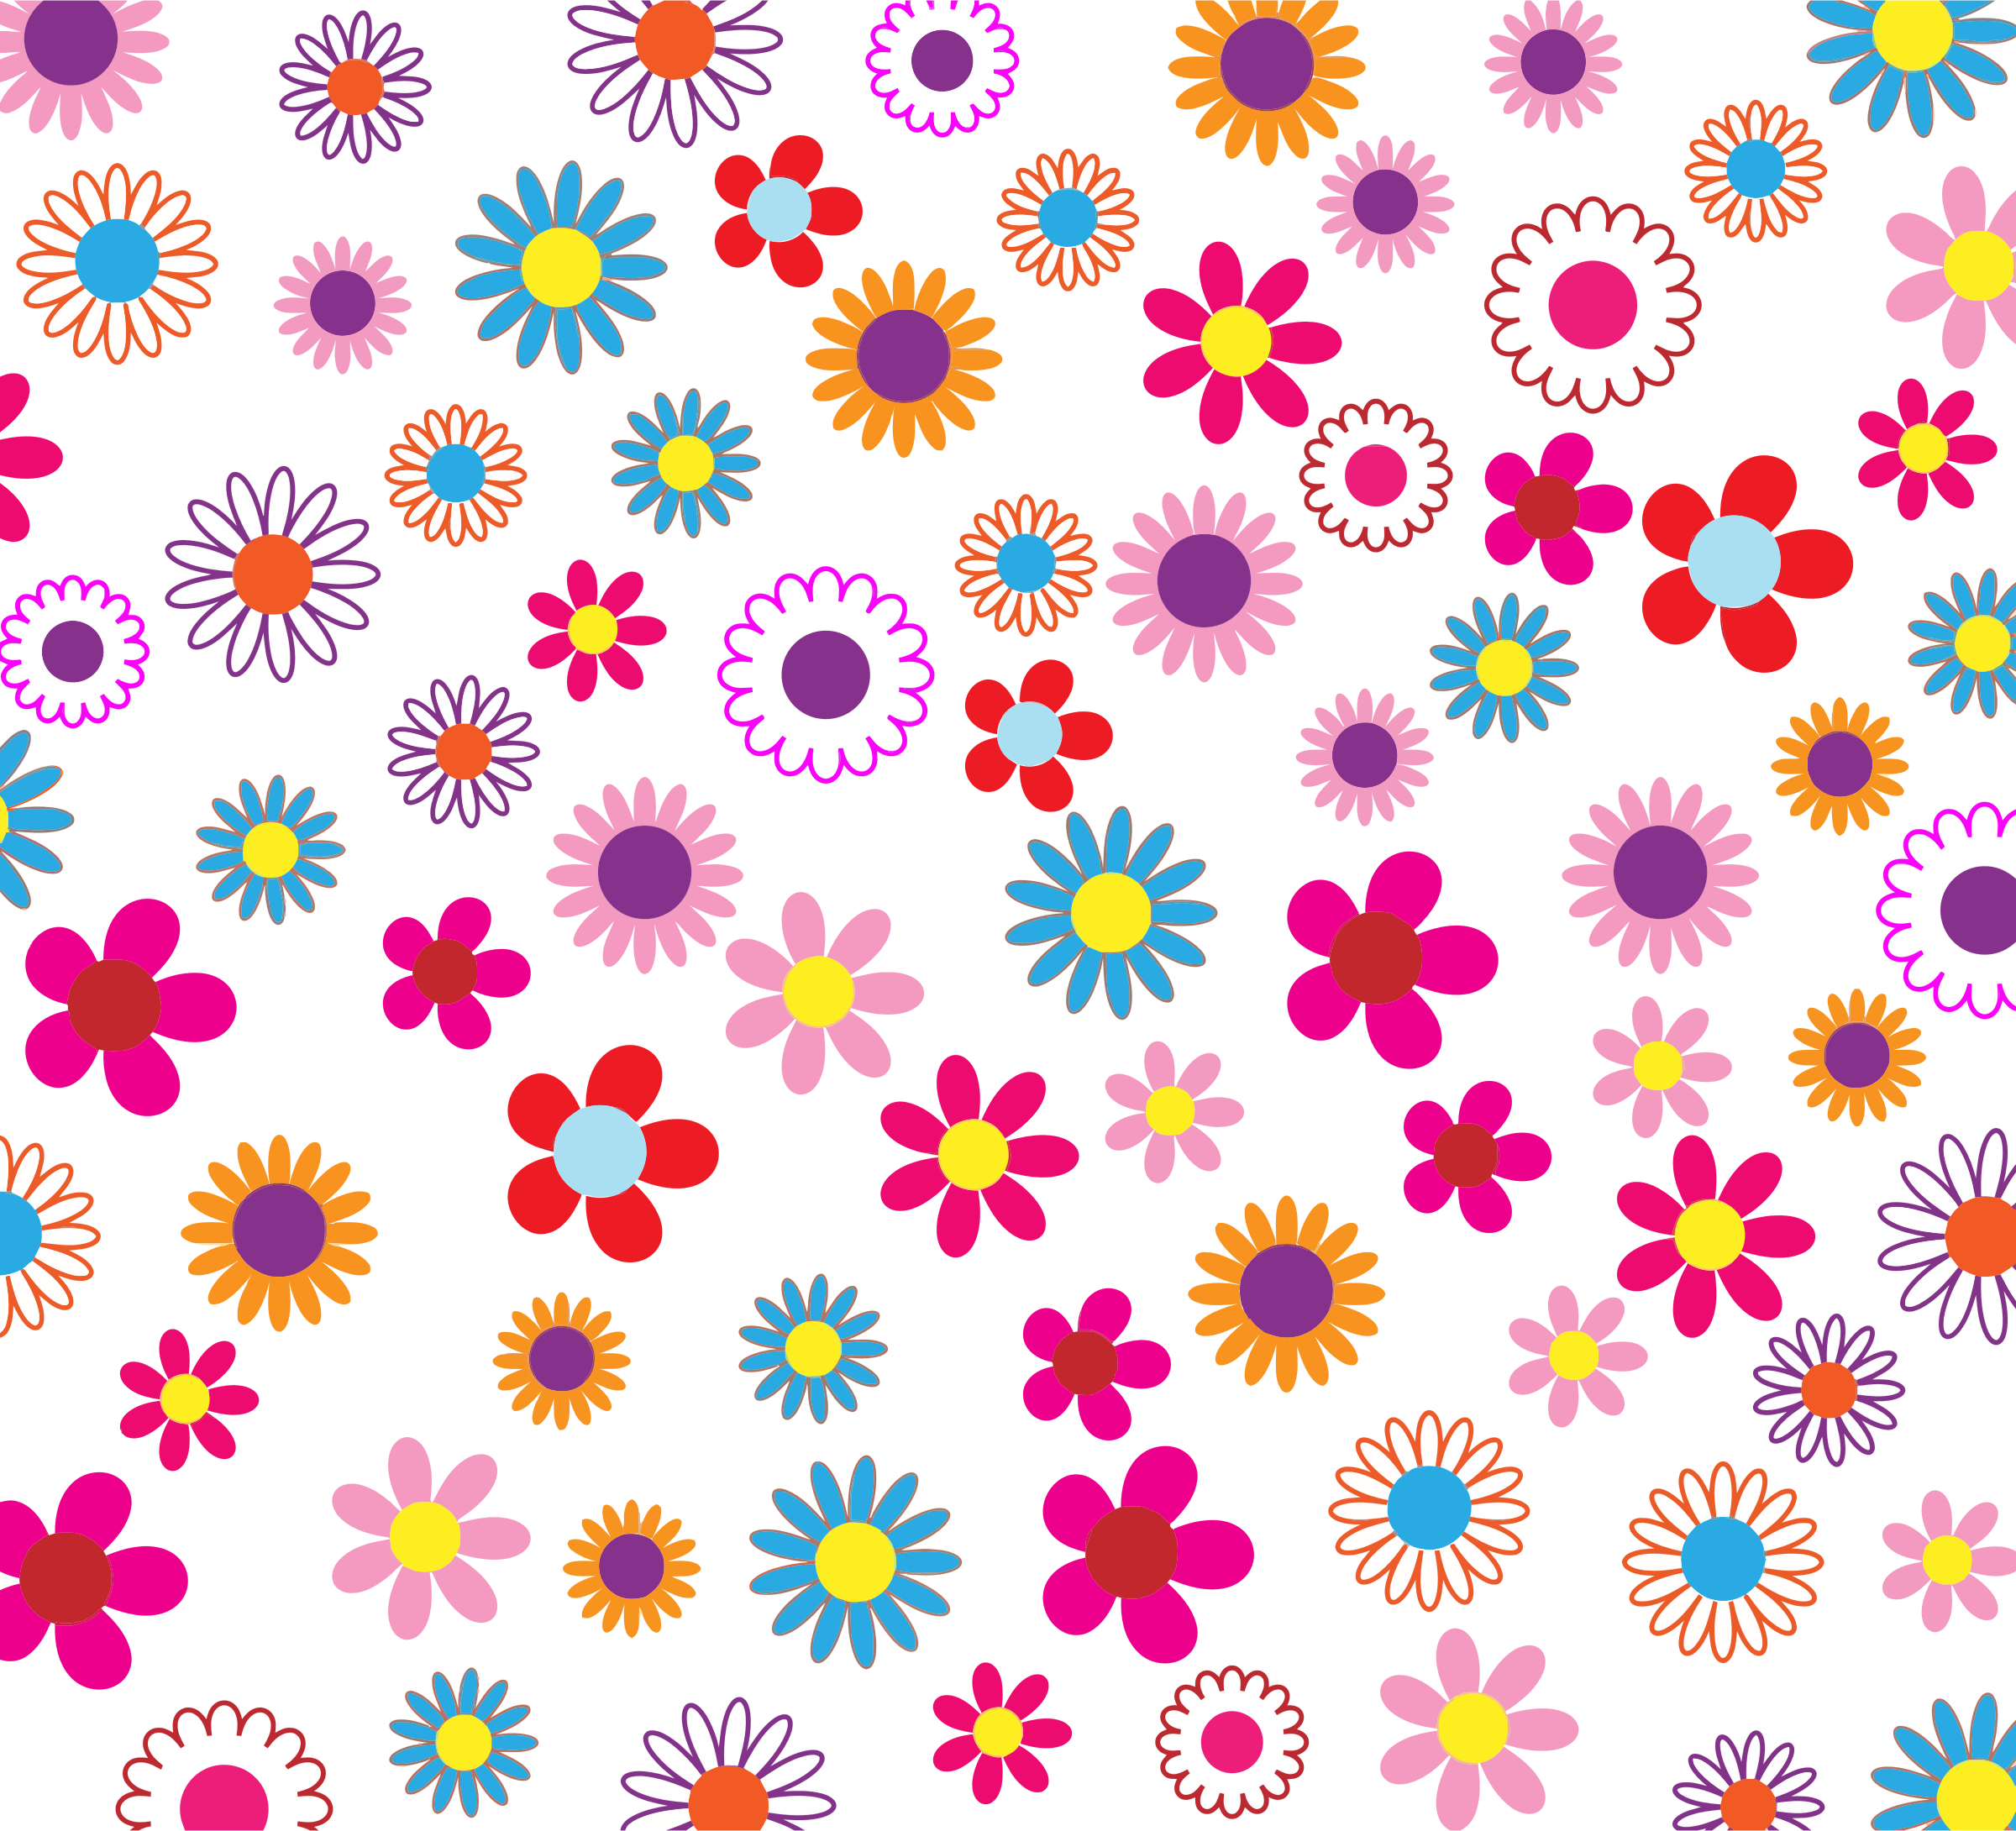 Floral patterns png. Colorful pattern background by